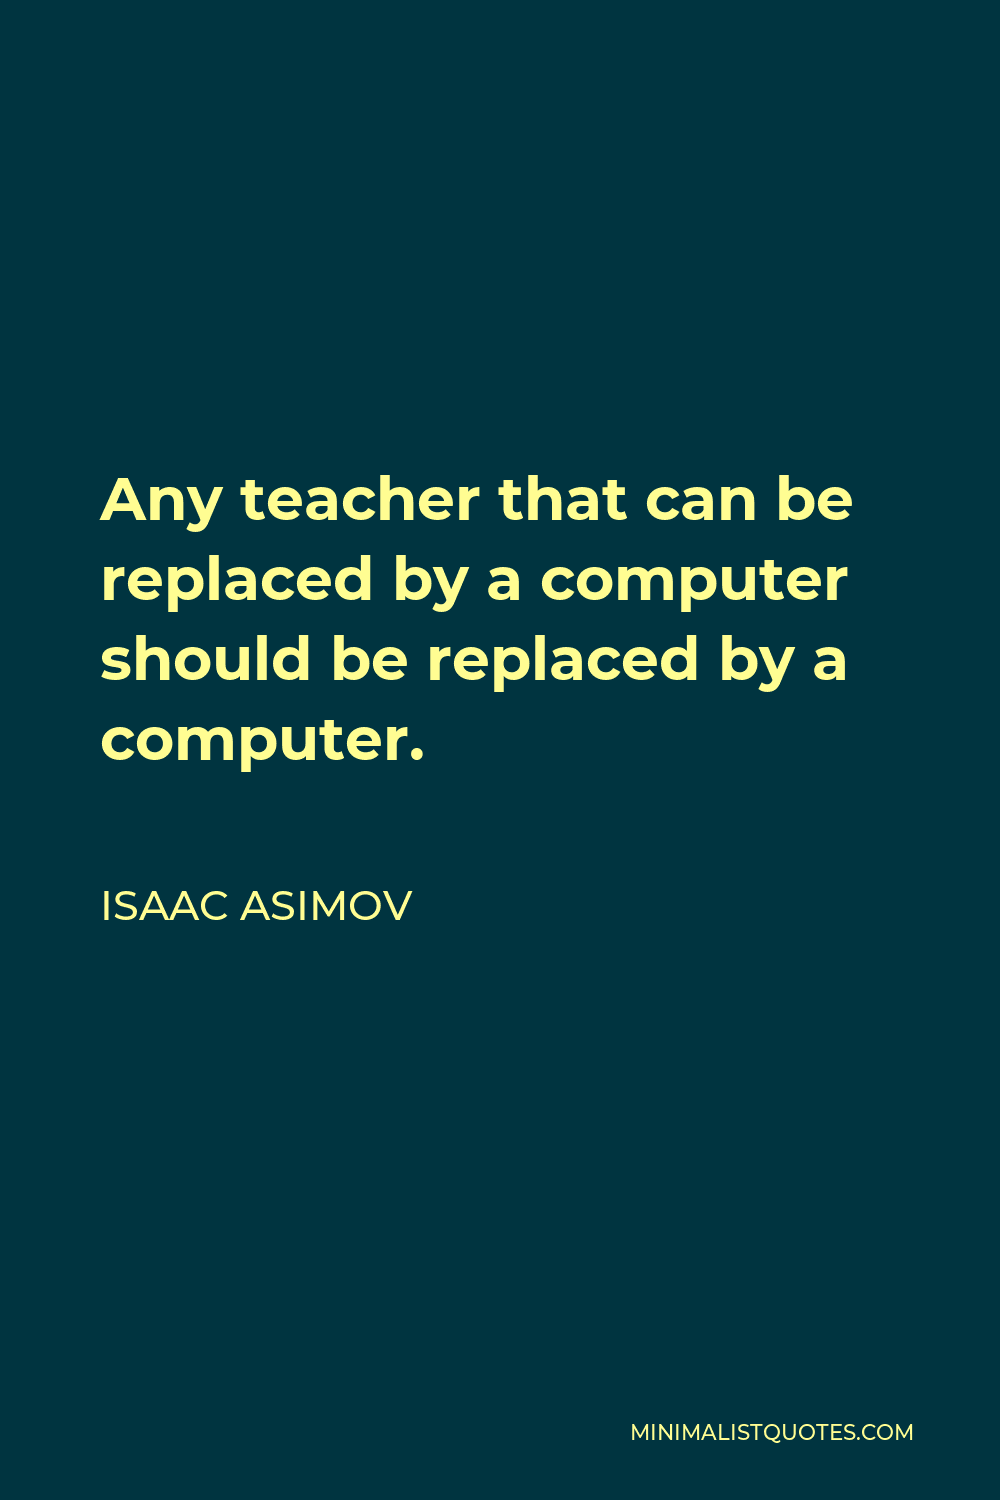 Isaac Asimov Quote - Any teacher that can be replaced by a computer should be replaced by a computer.